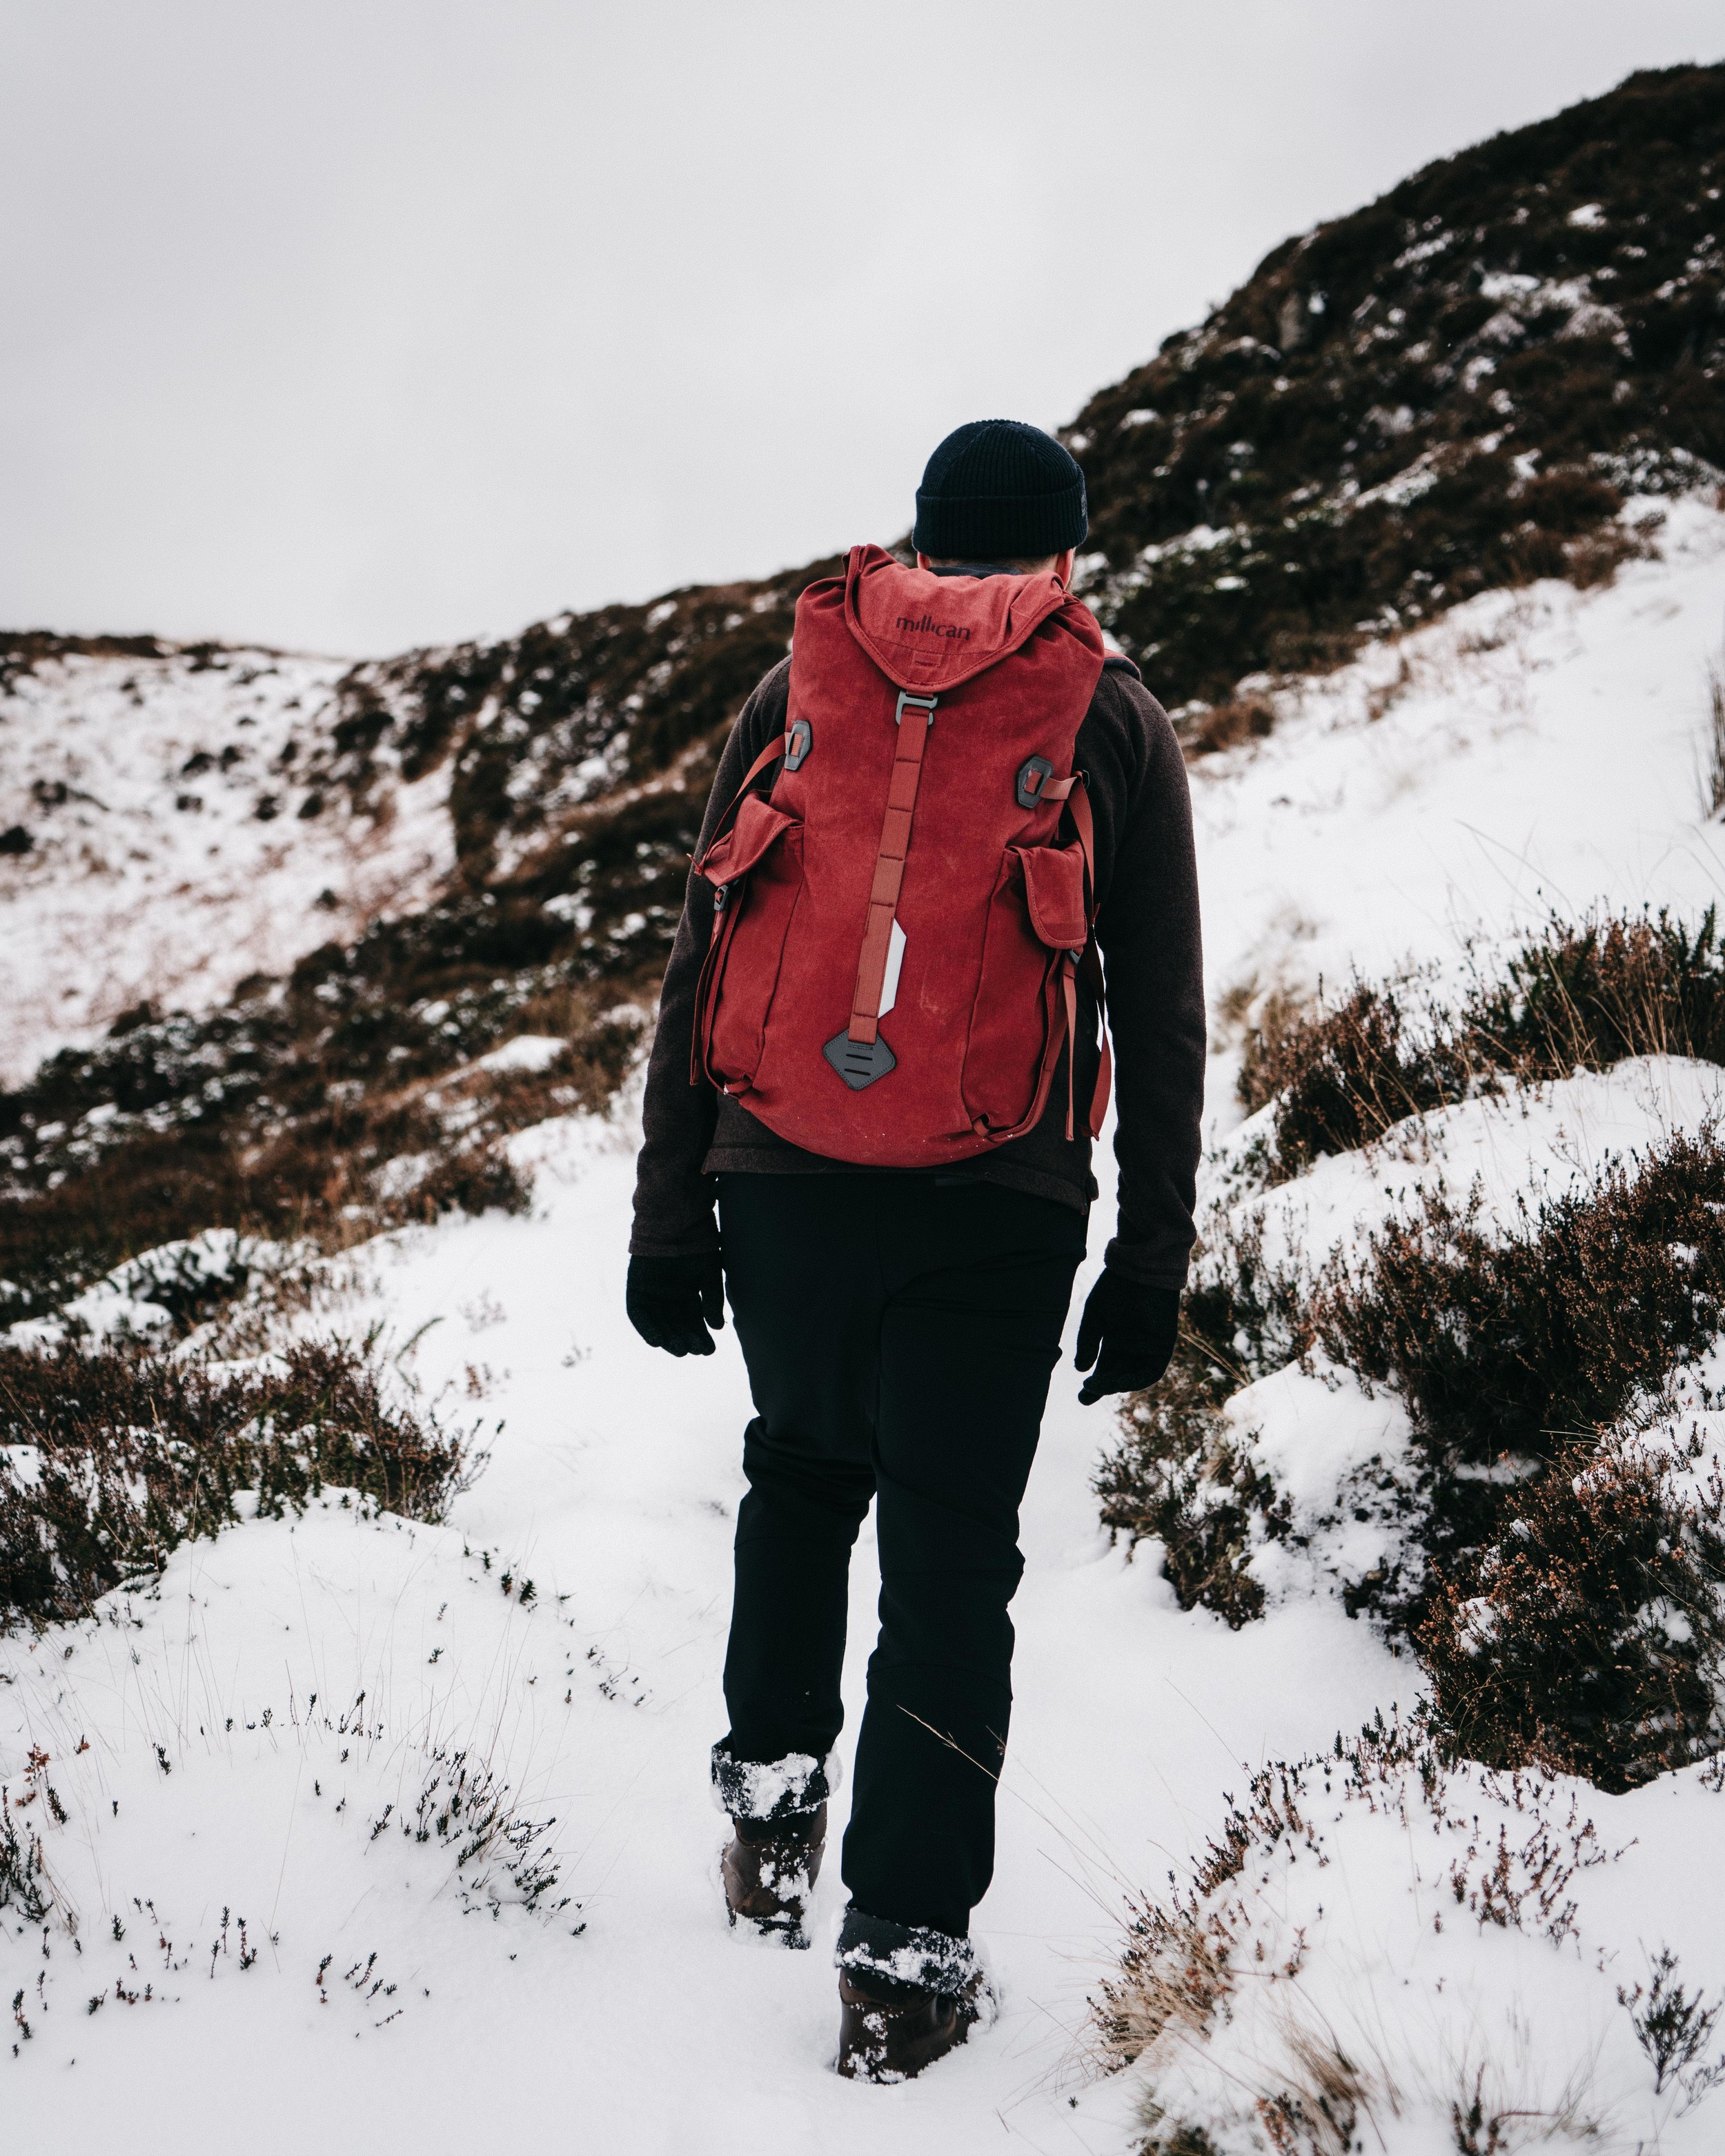 Hiking in the snow